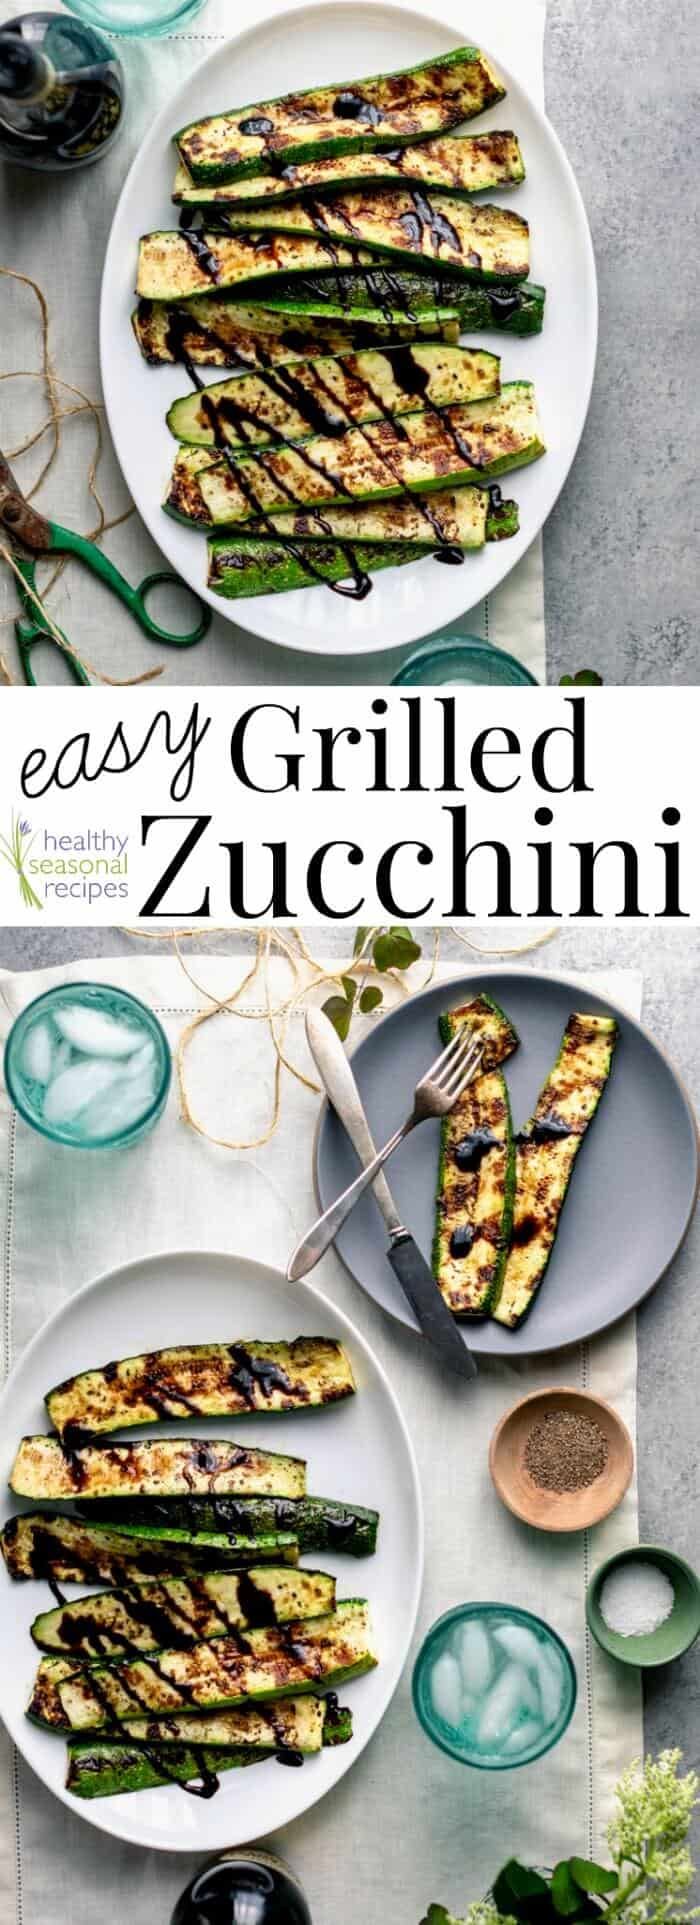 Easy Grilled Zucchini with balsamic glaze is such a simple but delicious summer side dish and great way to use up garden fresh zucchini! It\'s naturally vegan and gluten-free so everyone can enjoy it! #vegan #glutenfree #paleo #zucchini #grilling #grilled #easy #sidedish